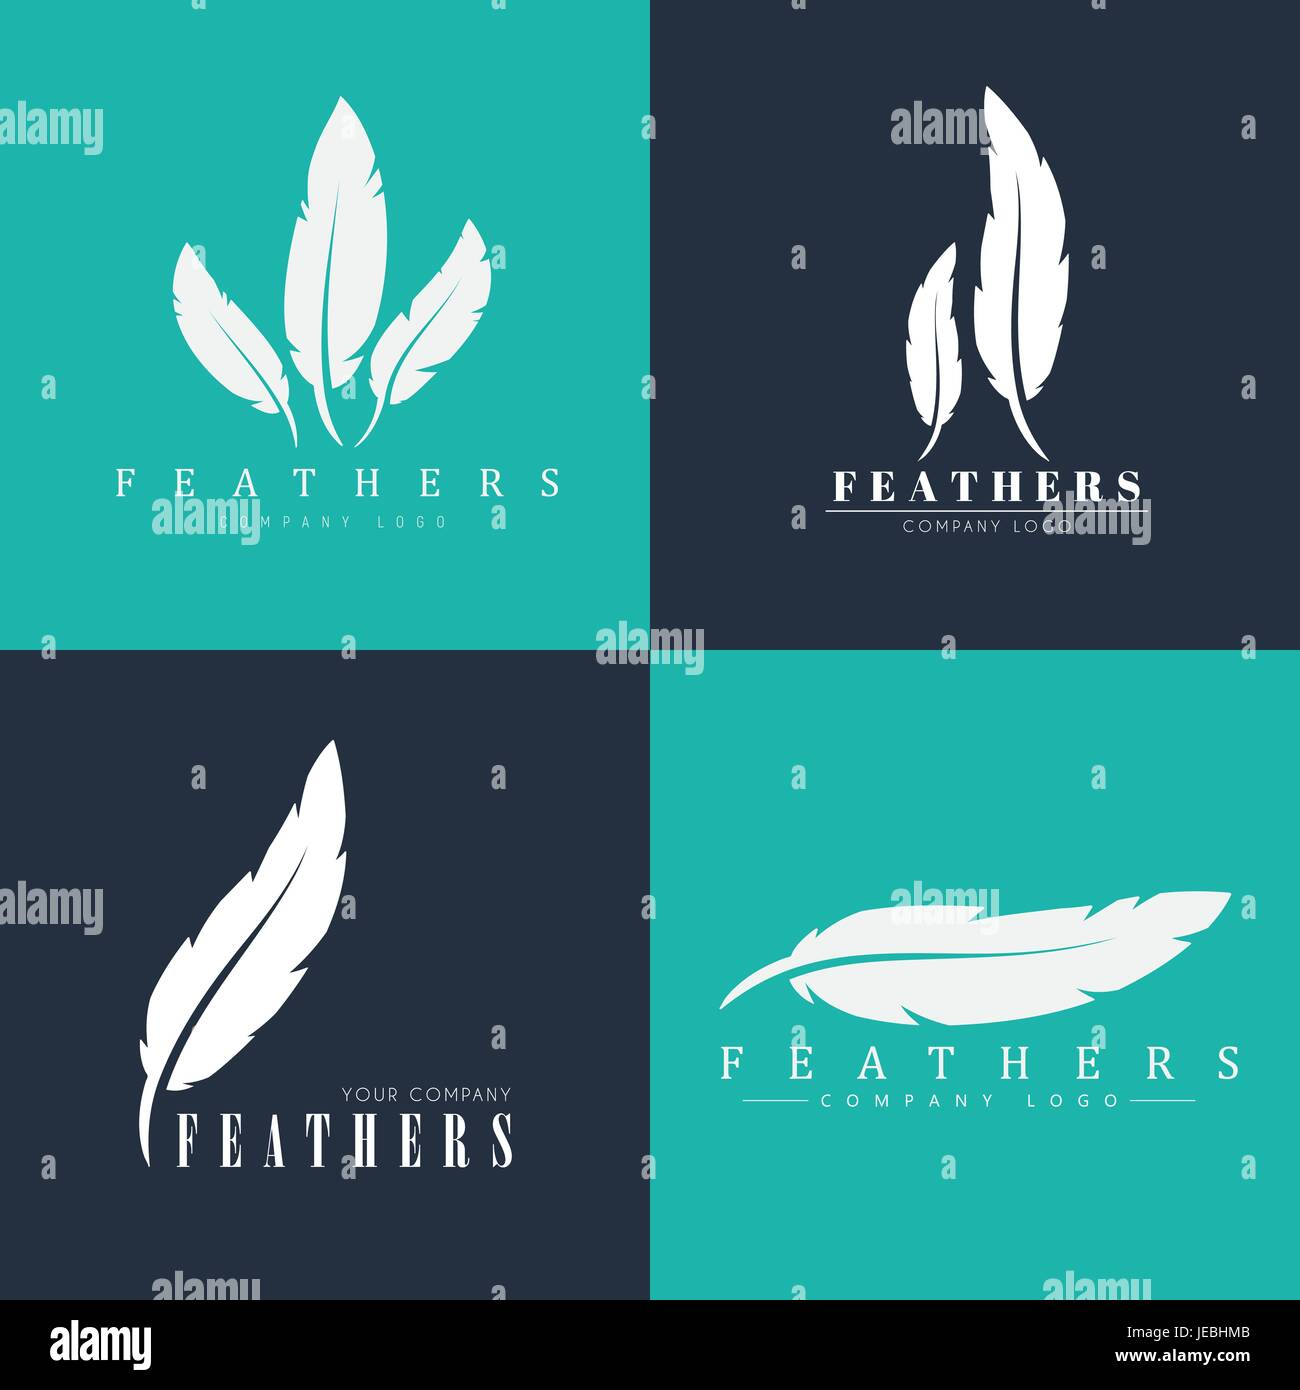 Design of logos with feathers templates for writers book design of logos with feathers templates for writers book publishers and businesses vector illustration set maxwellsz